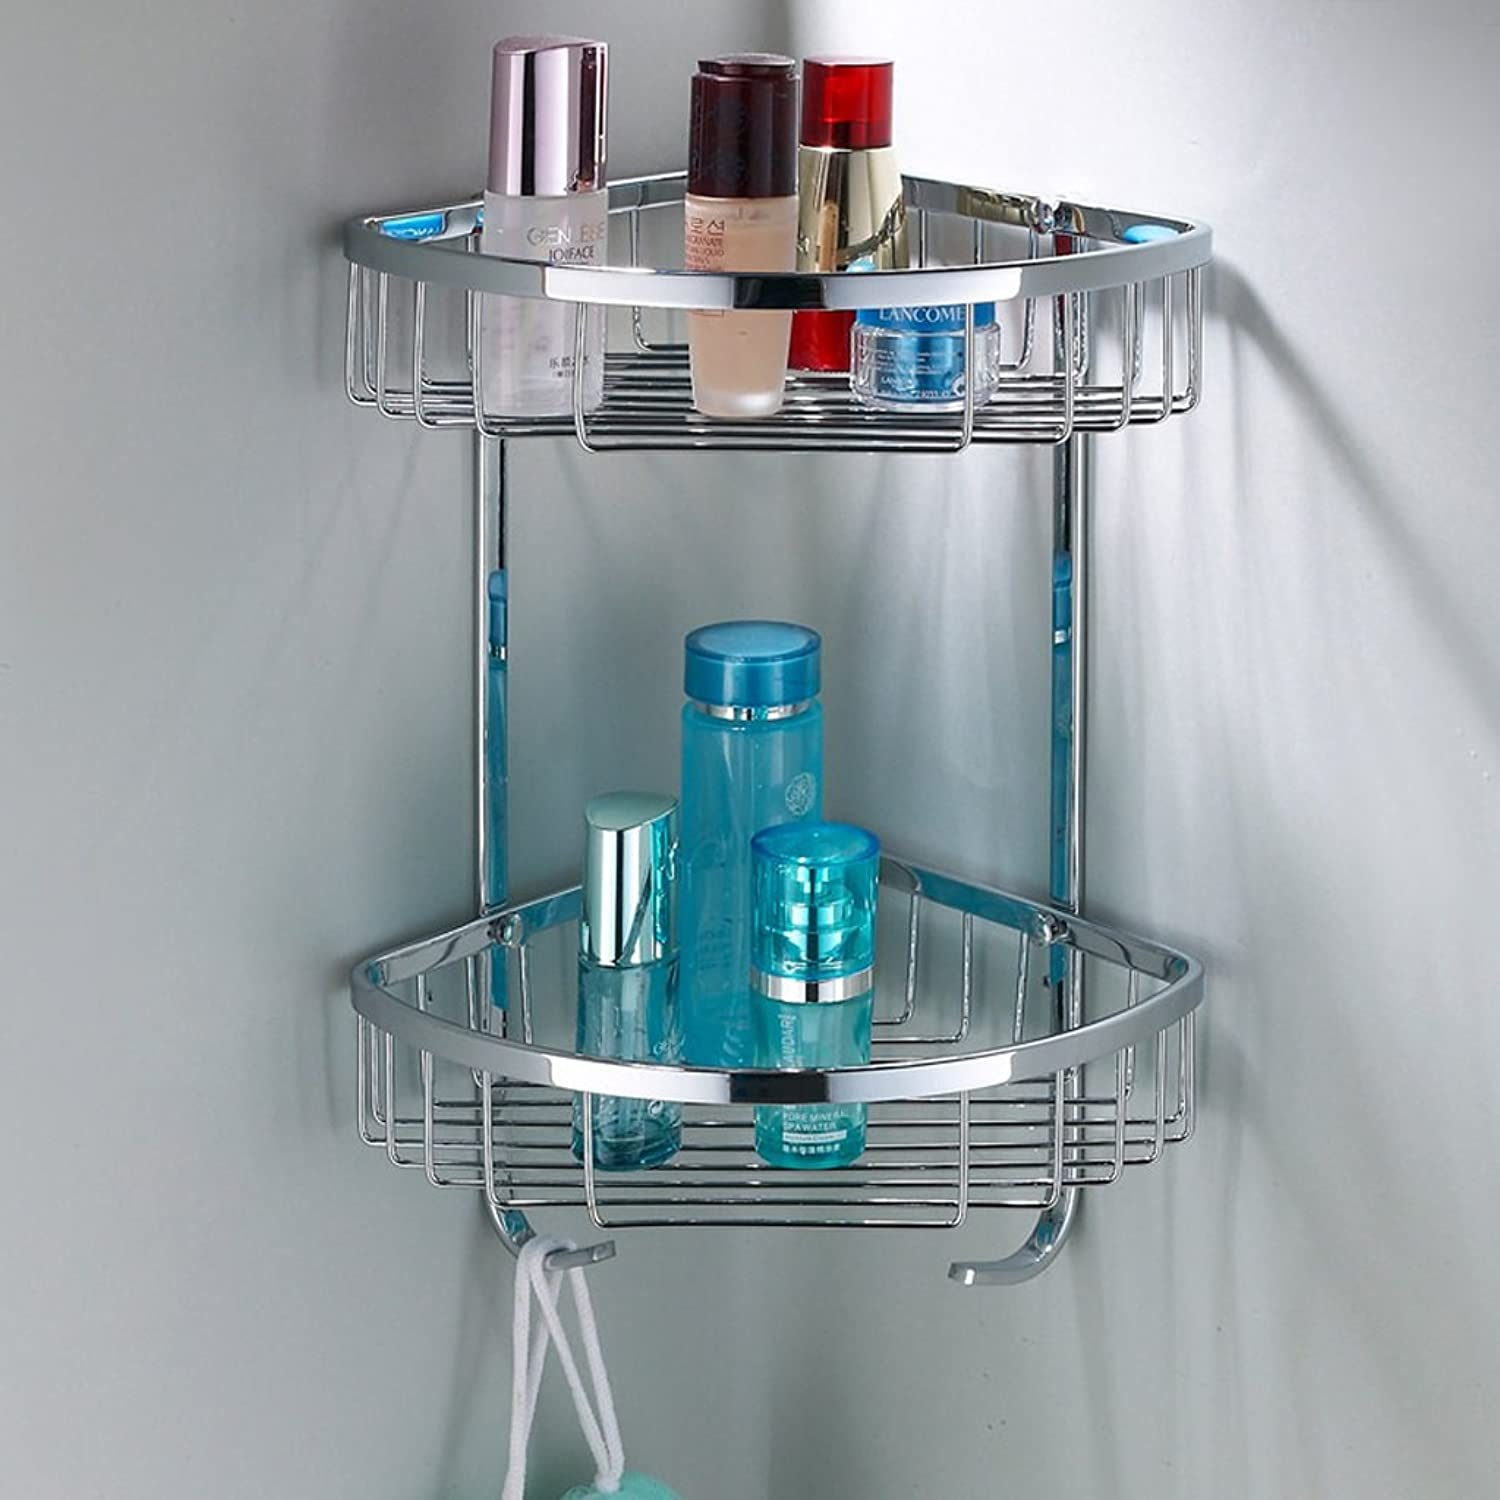 Bathroom rack 304 stainless steel triangular basket double bathroom corner basket rack Shelf Multifunction Home DecorationA+